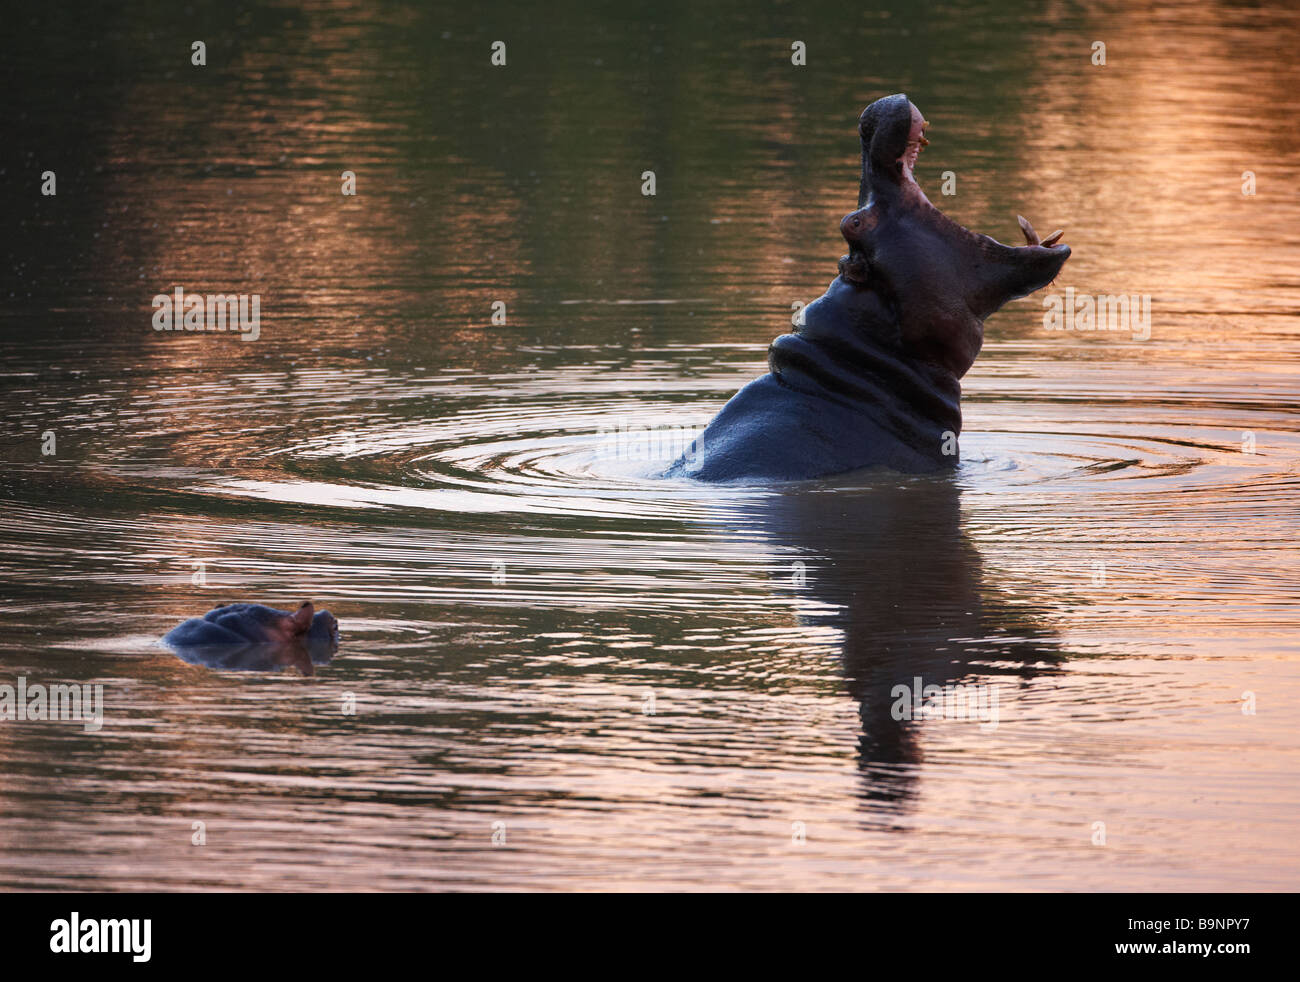 yawning hippopotamus in a river, Kruger National Park, South Africa - Stock Image